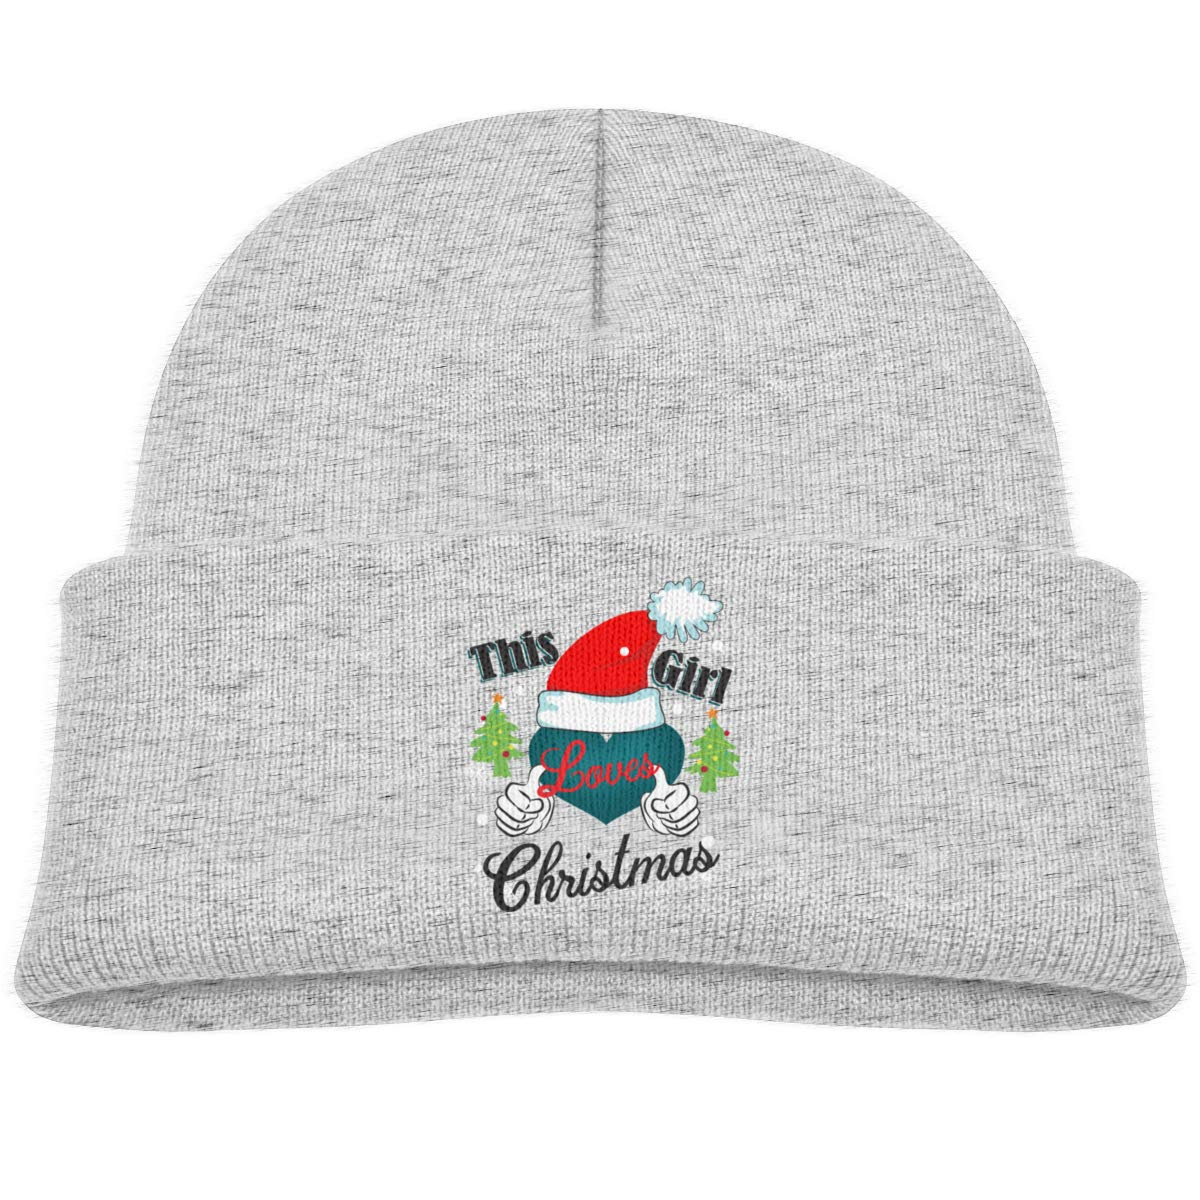 This Girl Loves Christmas Baby Boys Beanie Caps Knit Hat